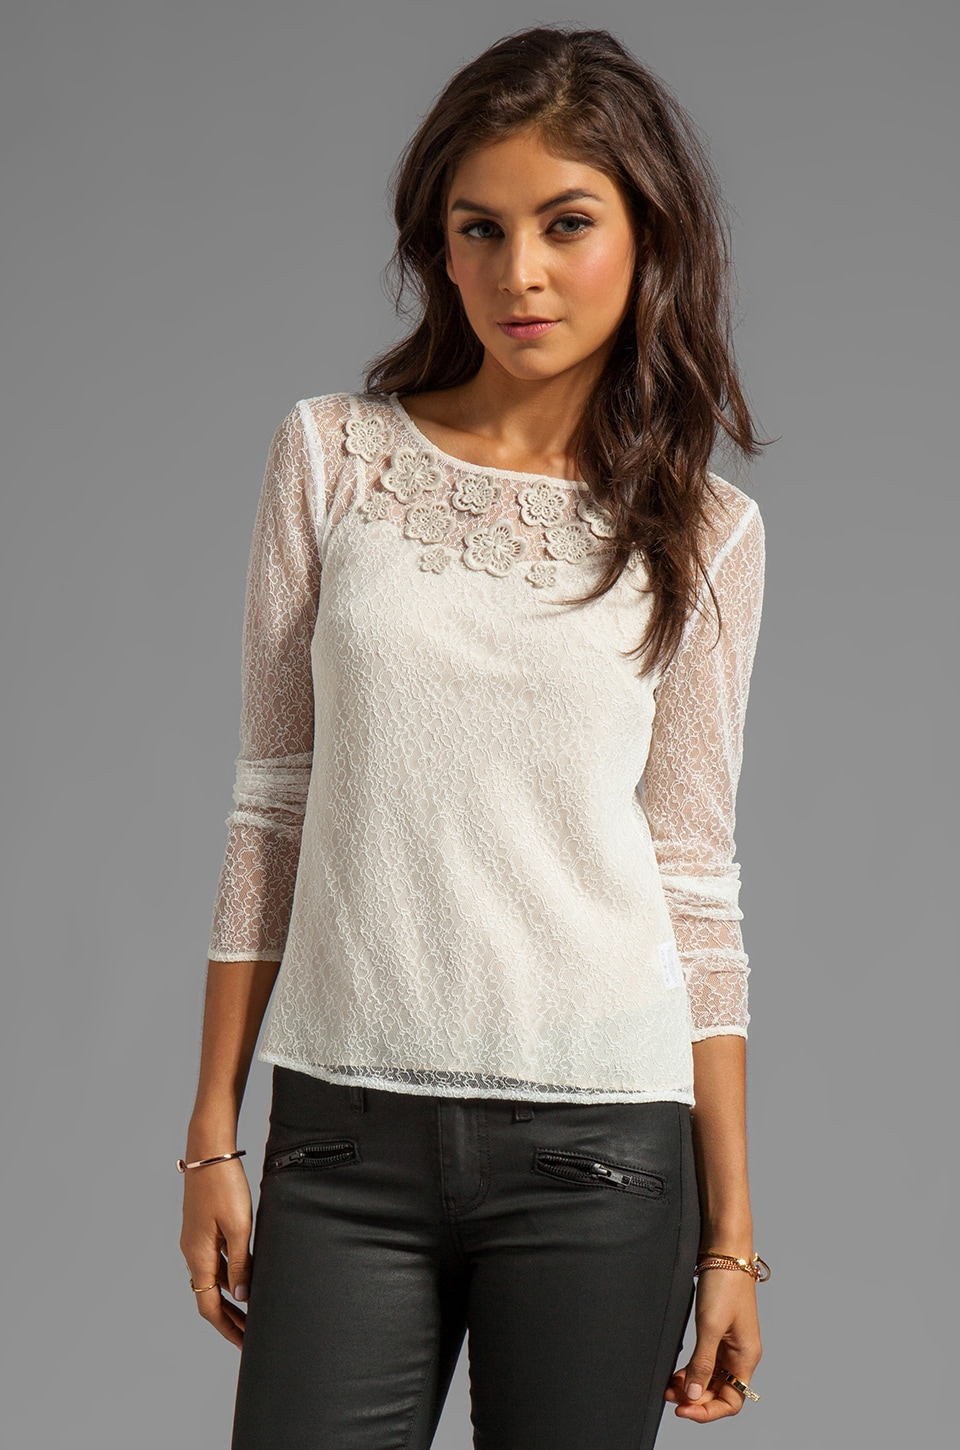 Alice by Temperley Kimi Sleeved Top in Stone